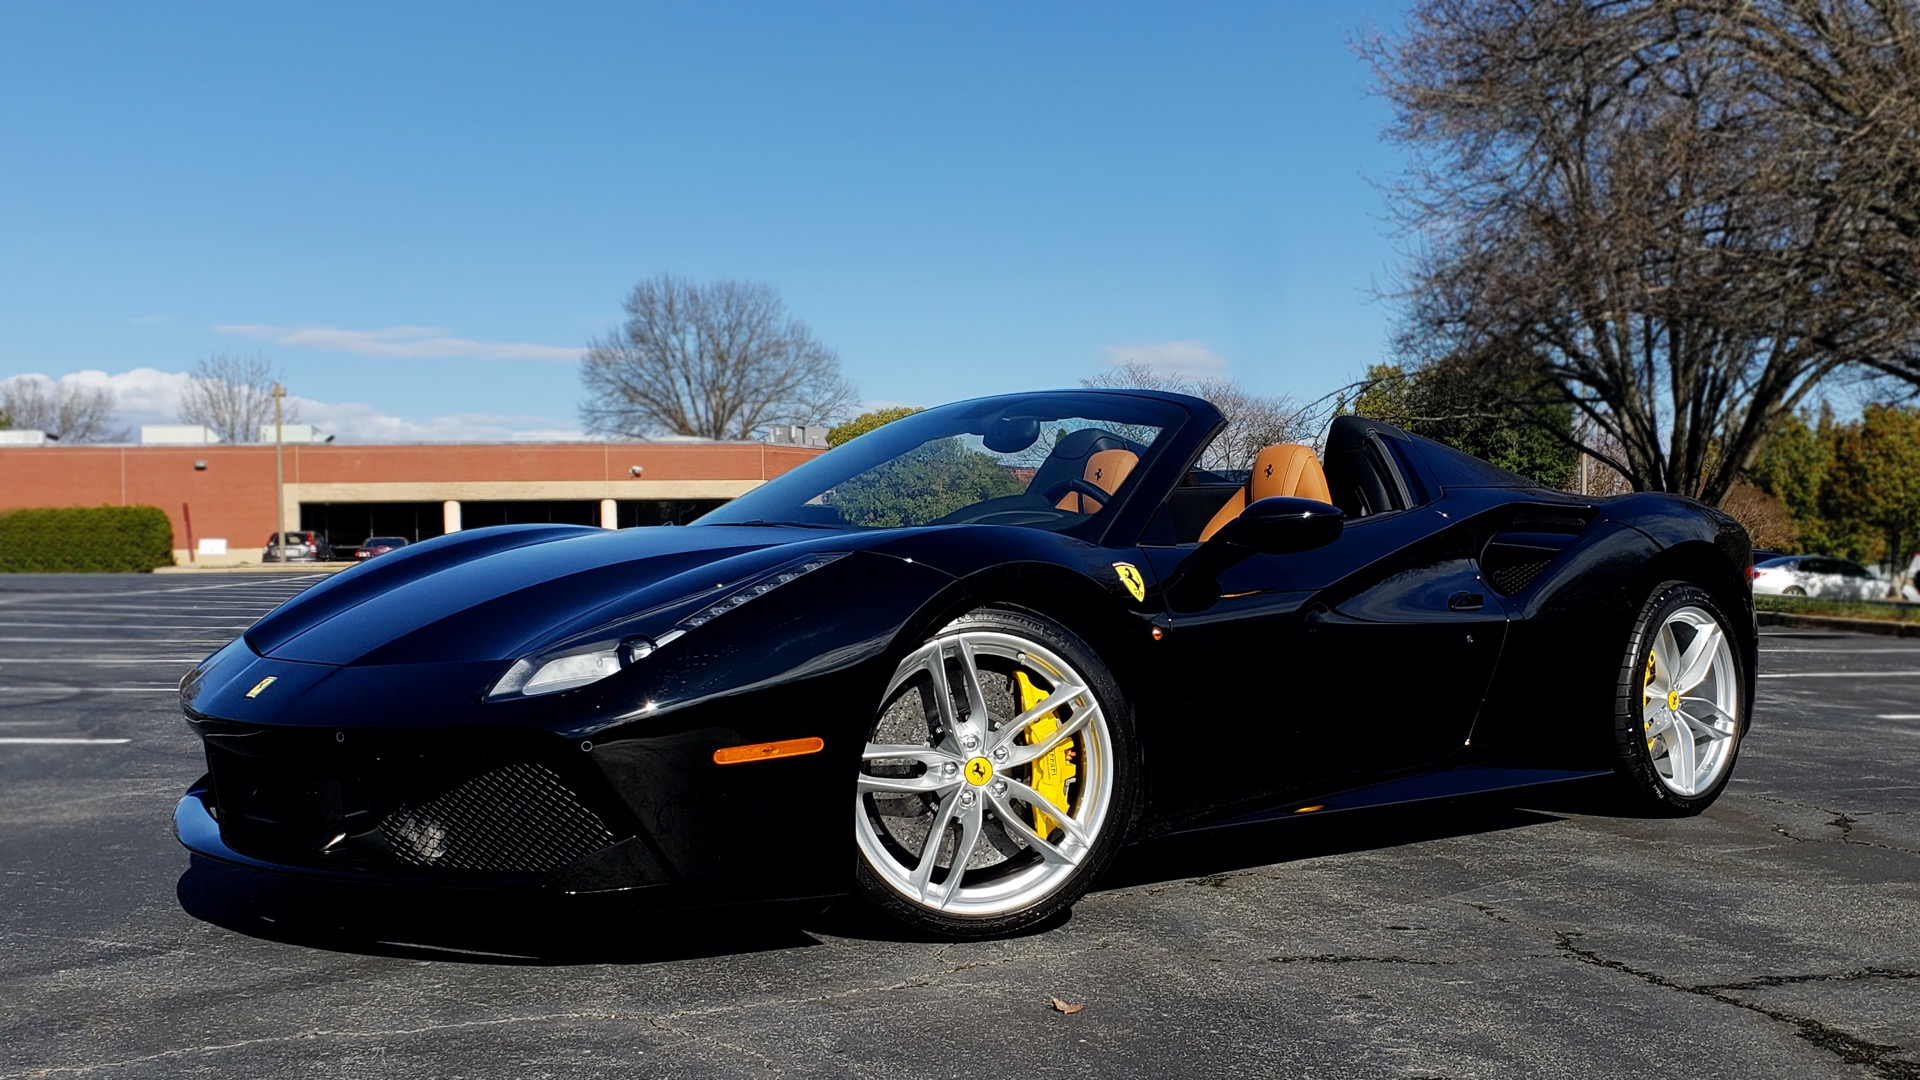 Used 2017 Ferrari 488 Spider SUSP LFT / JBL SND / SPRT EXH / F1 TRANS for sale $315,000 at Formula Imports in Charlotte NC 28227 49